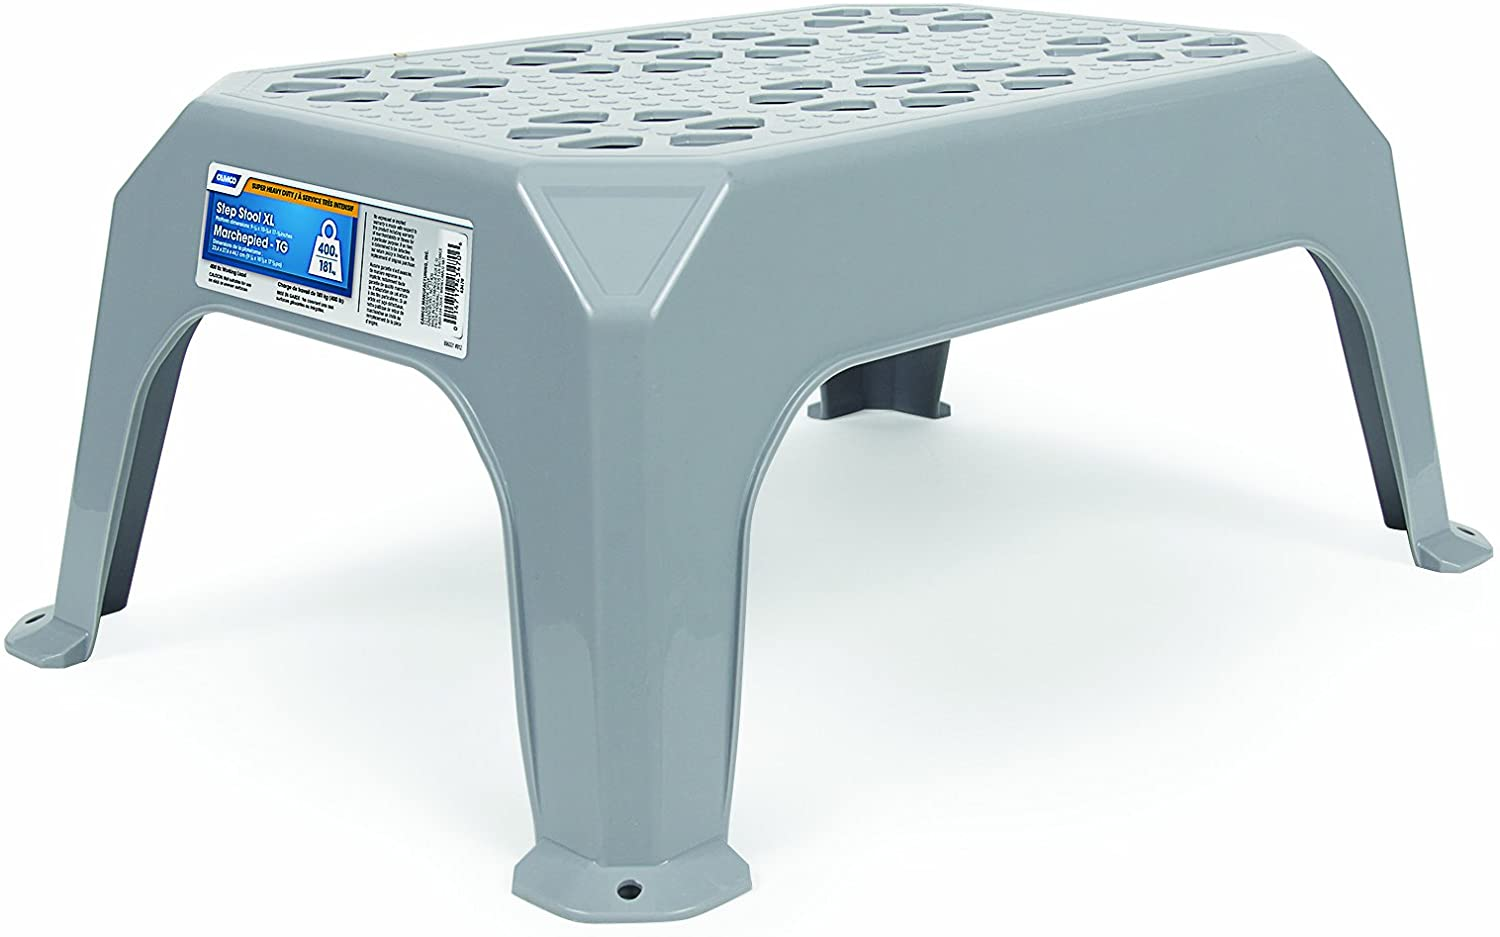 "Camco Durable Step Stool - Textured Platform Surface to Help Prevent Slipping |Lightweight & Sturdy | Design Excellent for RVs, Trailers, Trucks| 300 lb. Capacity | 21"" x 15"" x 9"" - Gray (43460)"